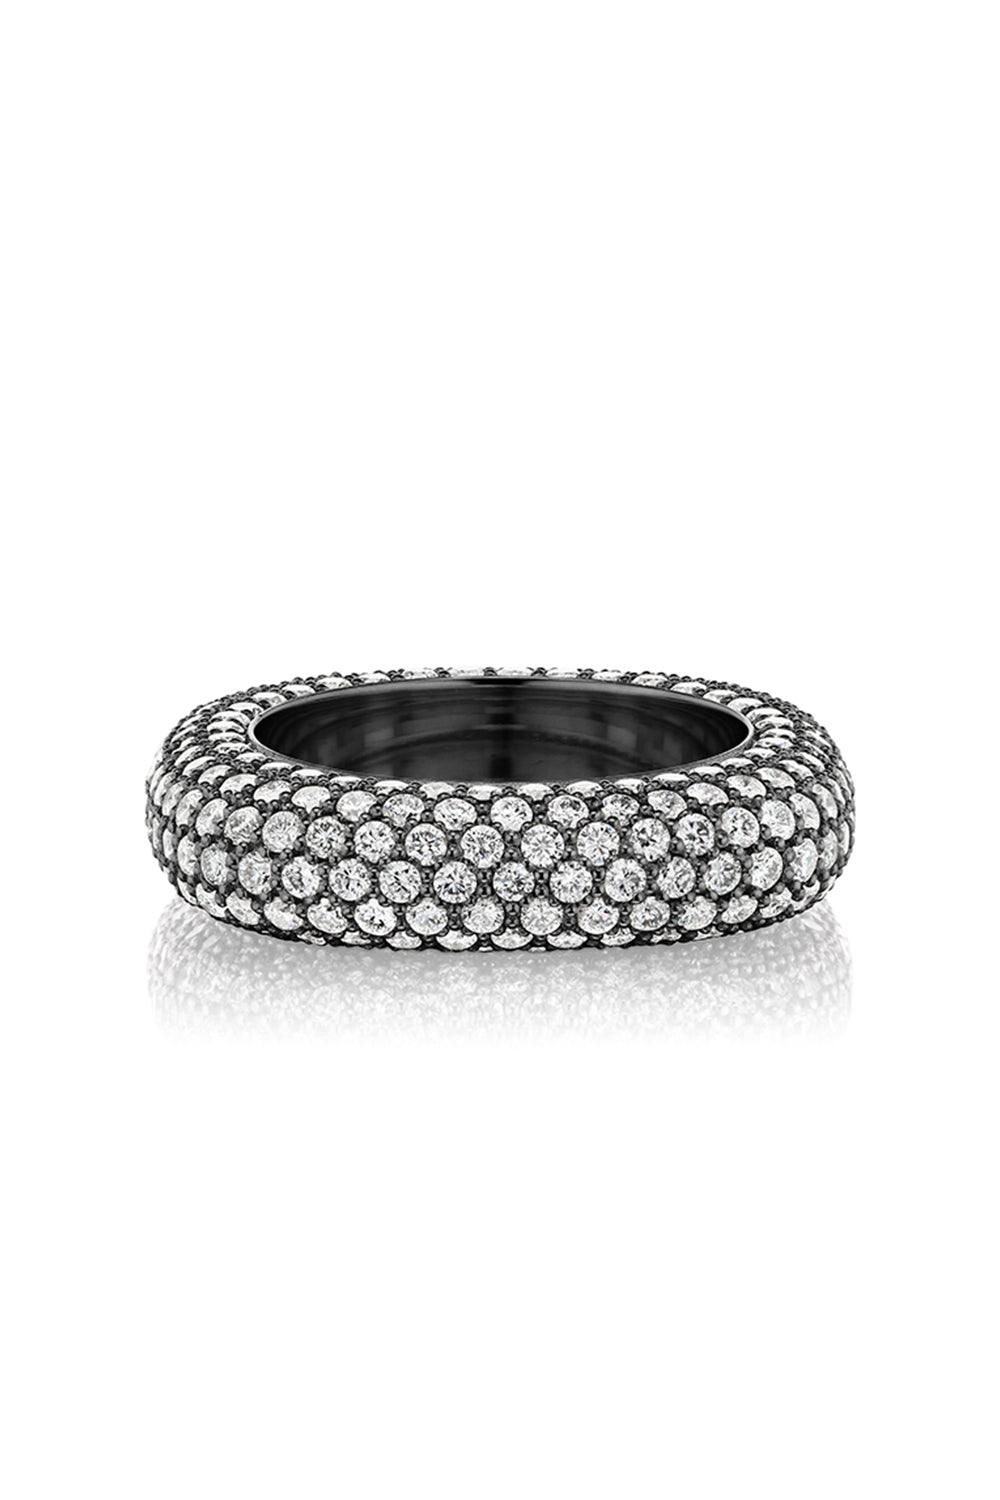 Square Bling Ring in Black Rhodium